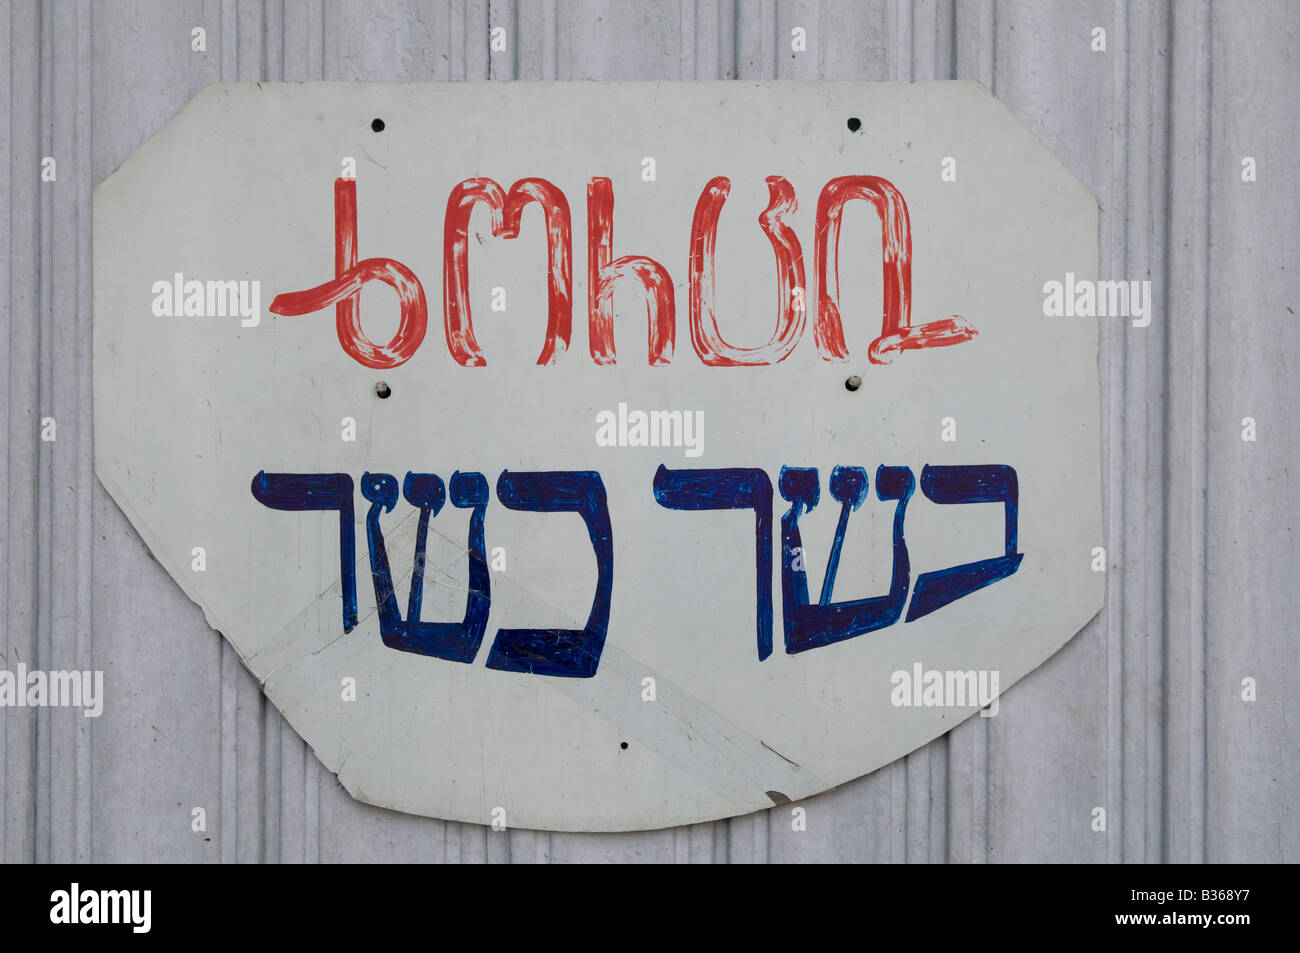 A Kosher restaurant sign in Hebrew and Georgian language in the Old town of Tbilisi Republic of Georgia - Stock Image